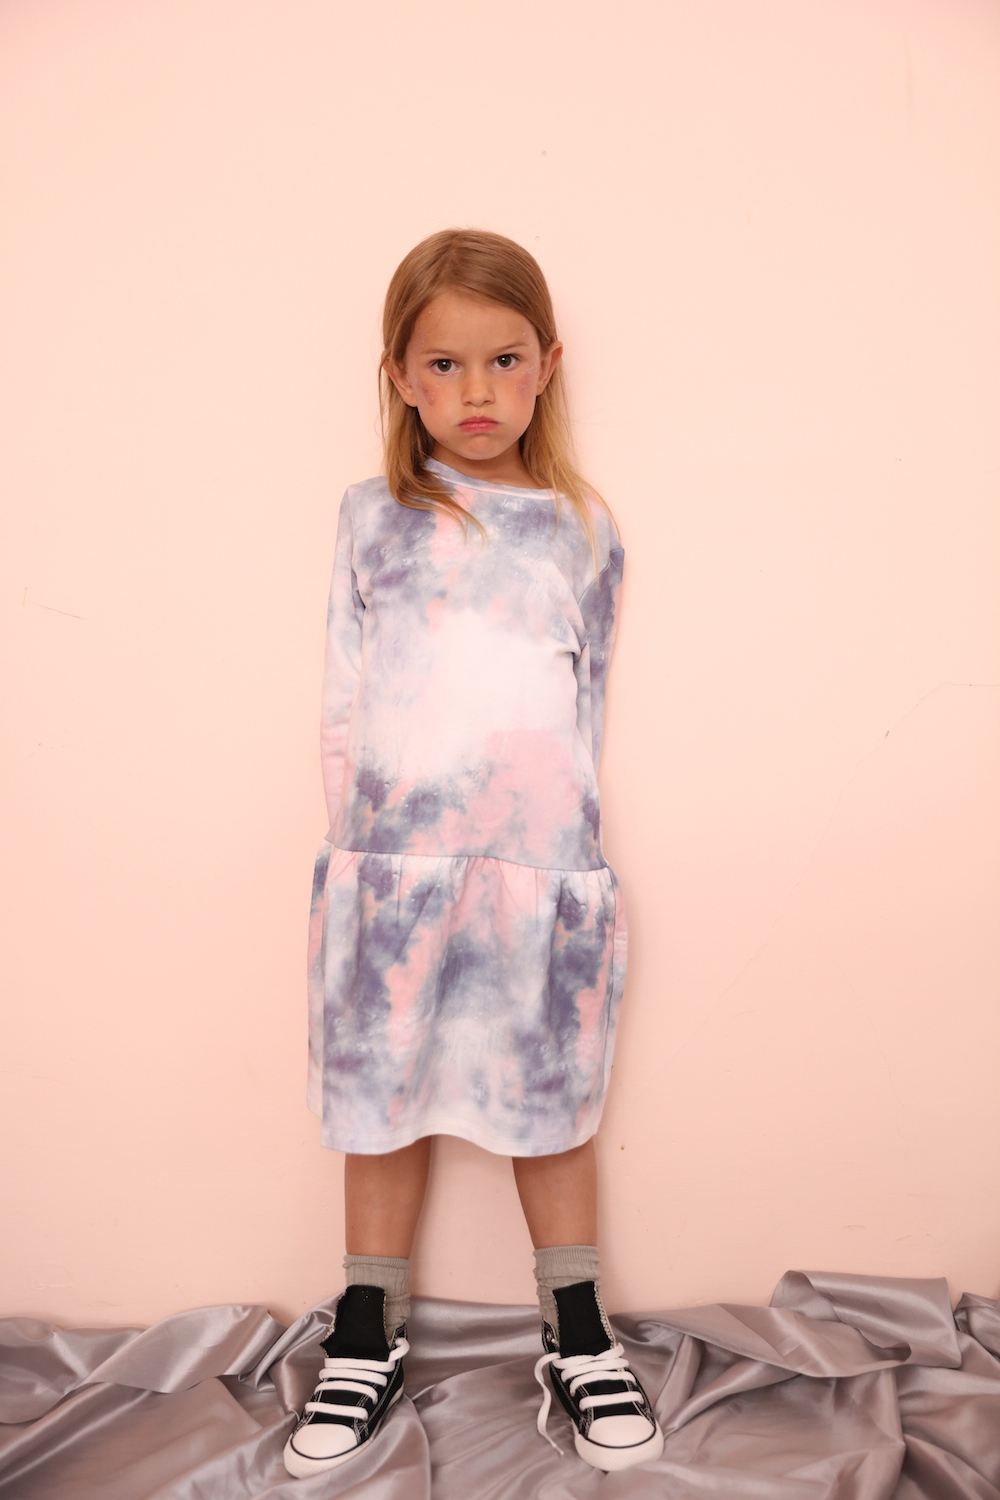 Little_man_happy_aw16_dress_girls_chloe_thurston